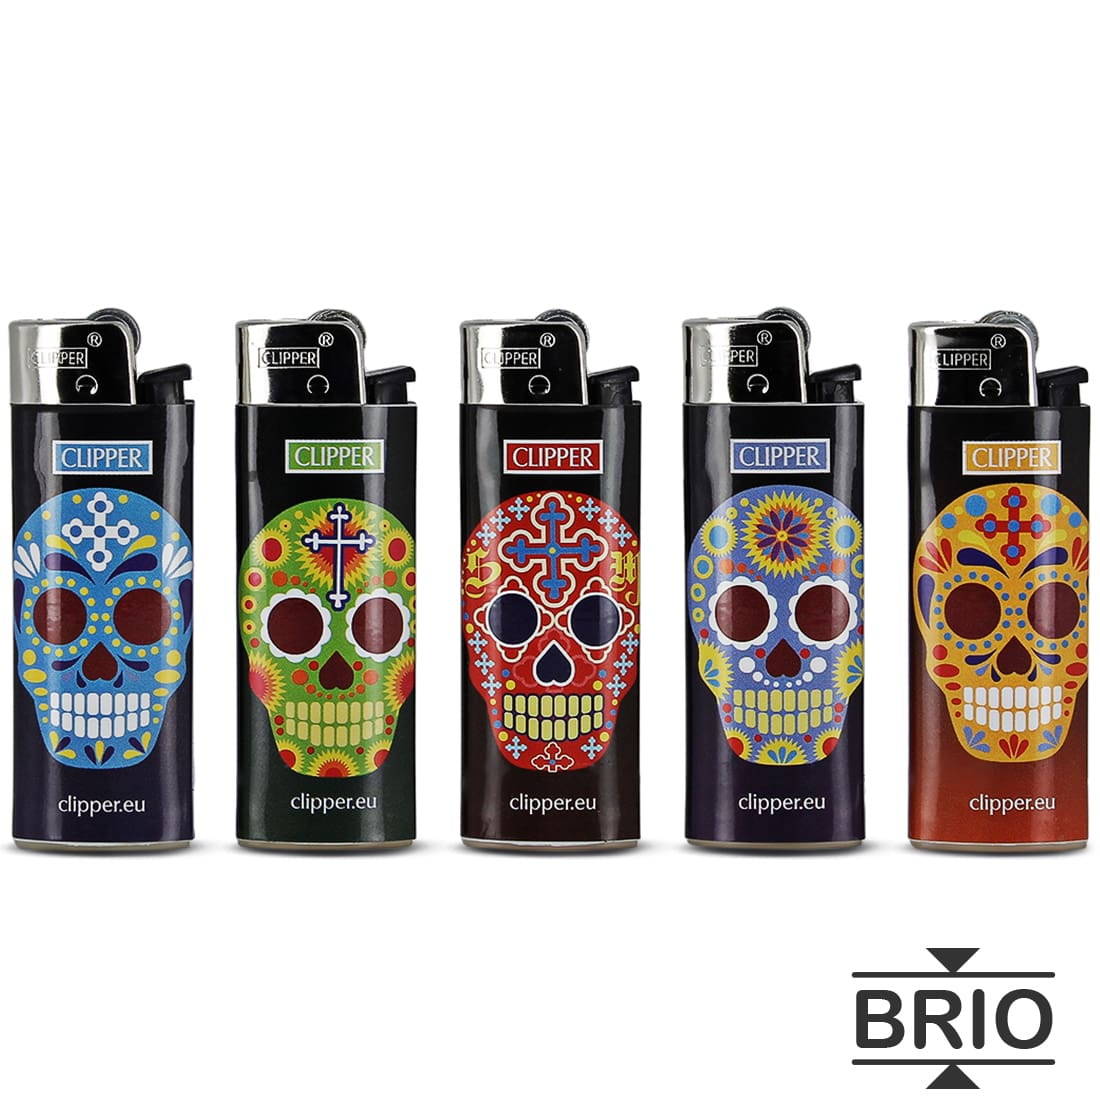 Photo de Briquet Clipper Brio Micro Tête de Mort Calaveras x 5